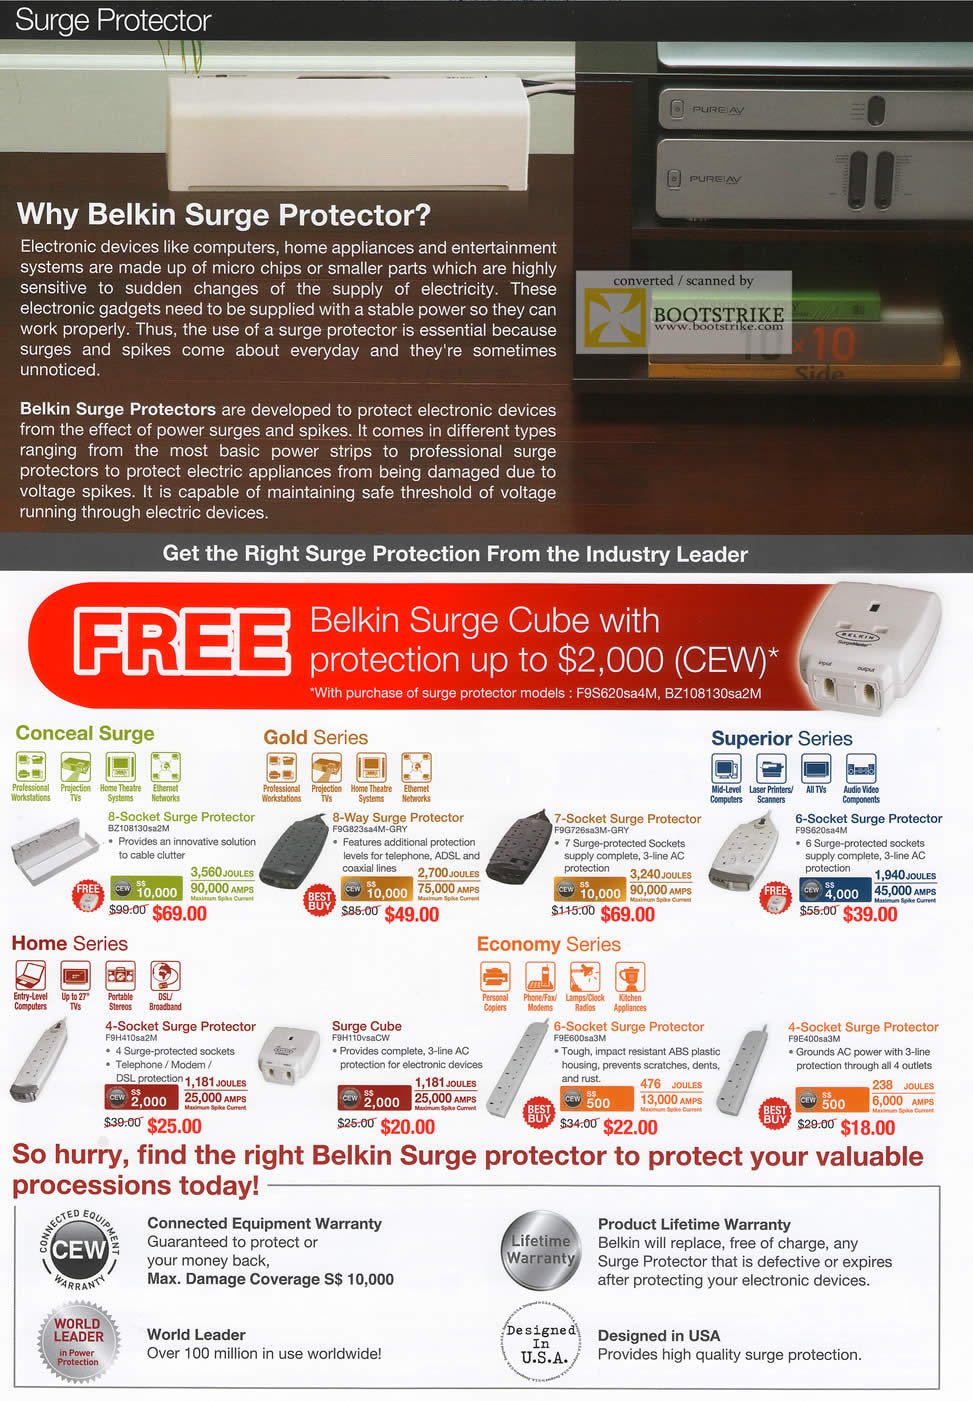 IT Show 2011 price list image brochure of Ban Leong Belkin Surge Protector Conceal Gold Superior Home Economy Cube